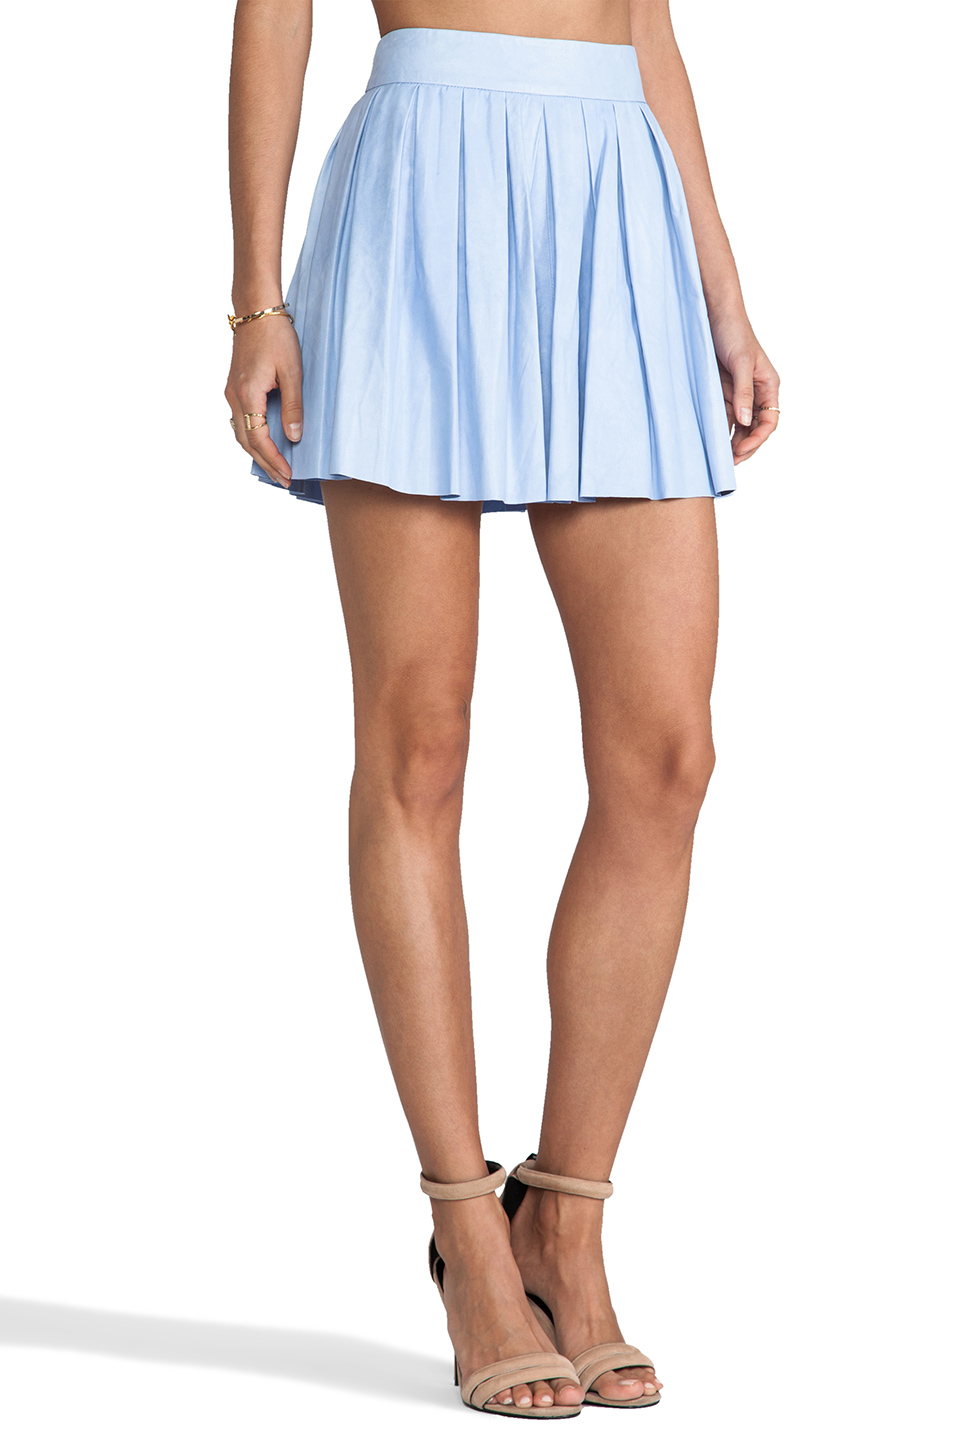 Alice + Olivia Box Pleat Leather Skirt in Sky Blue